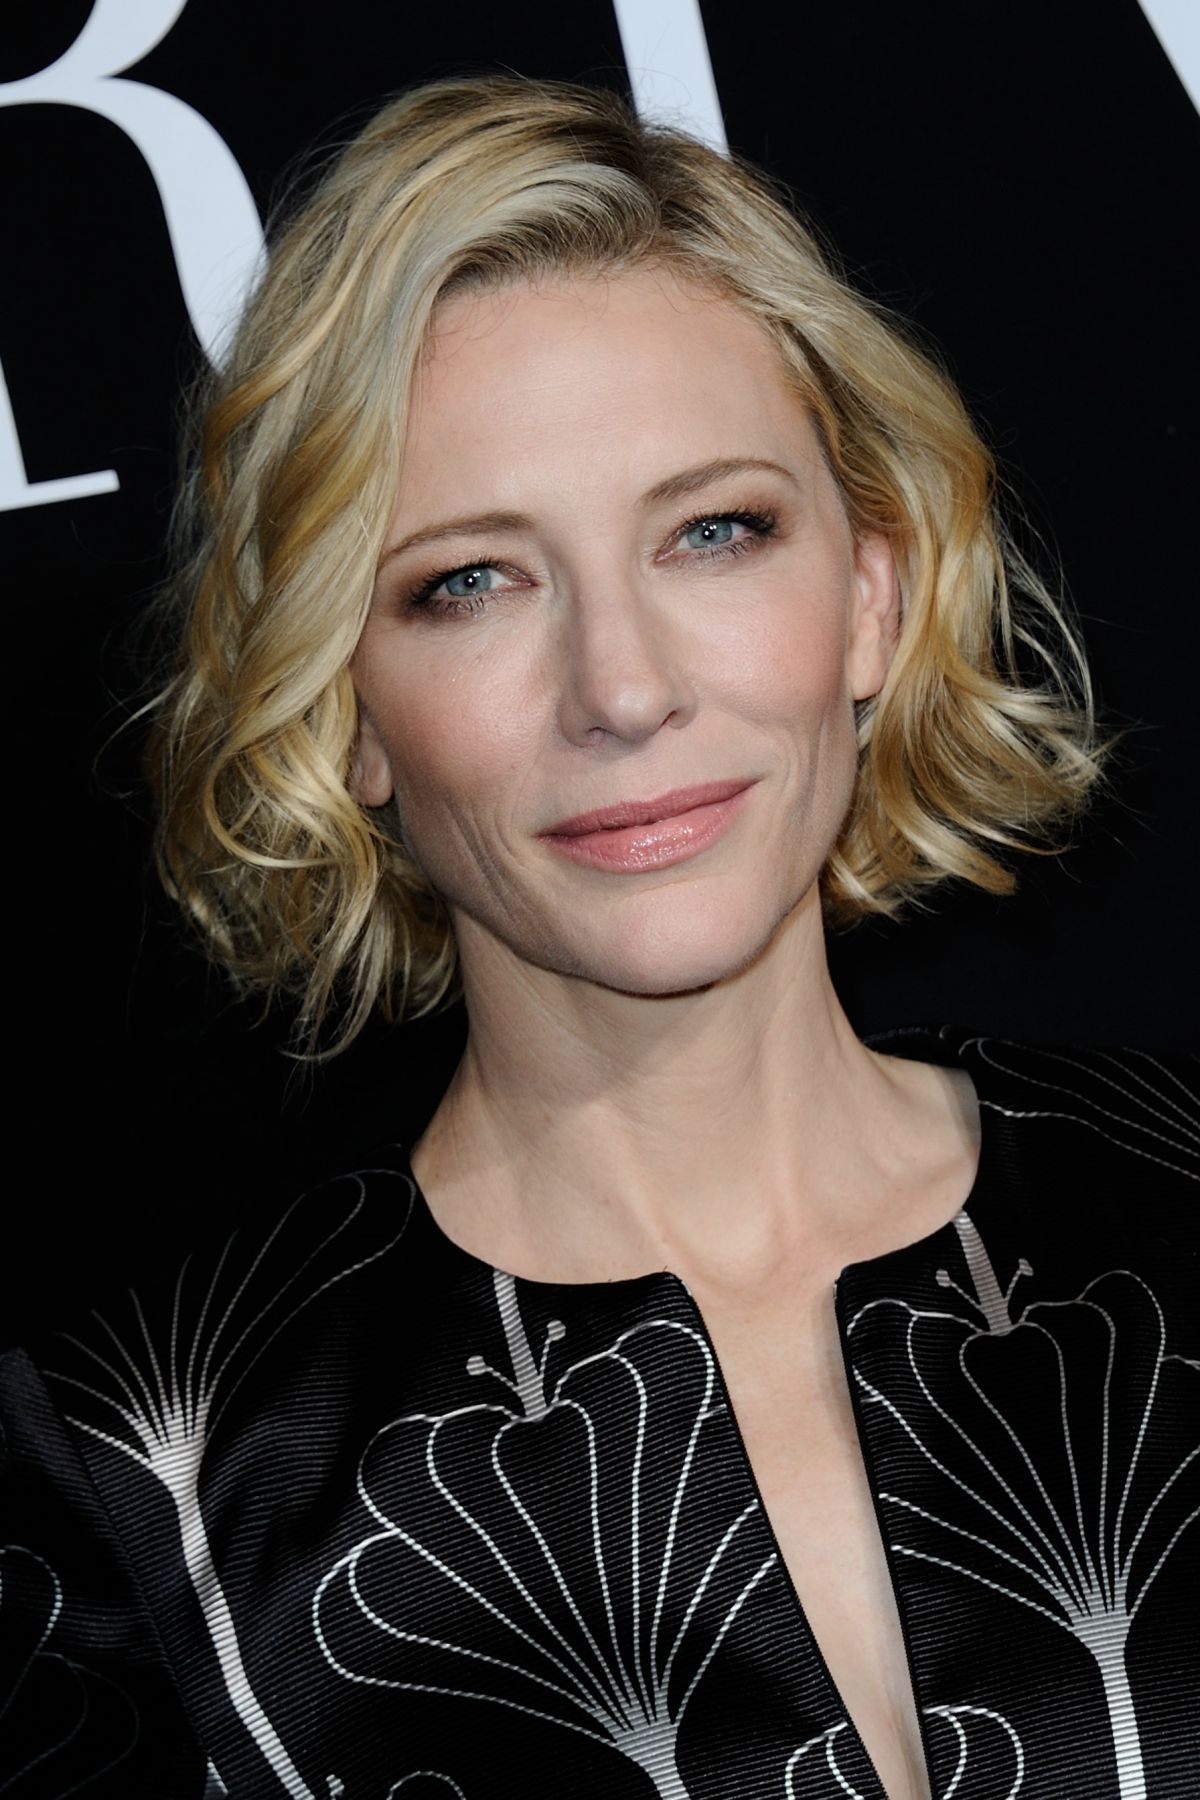 cate blanchett - photo #18